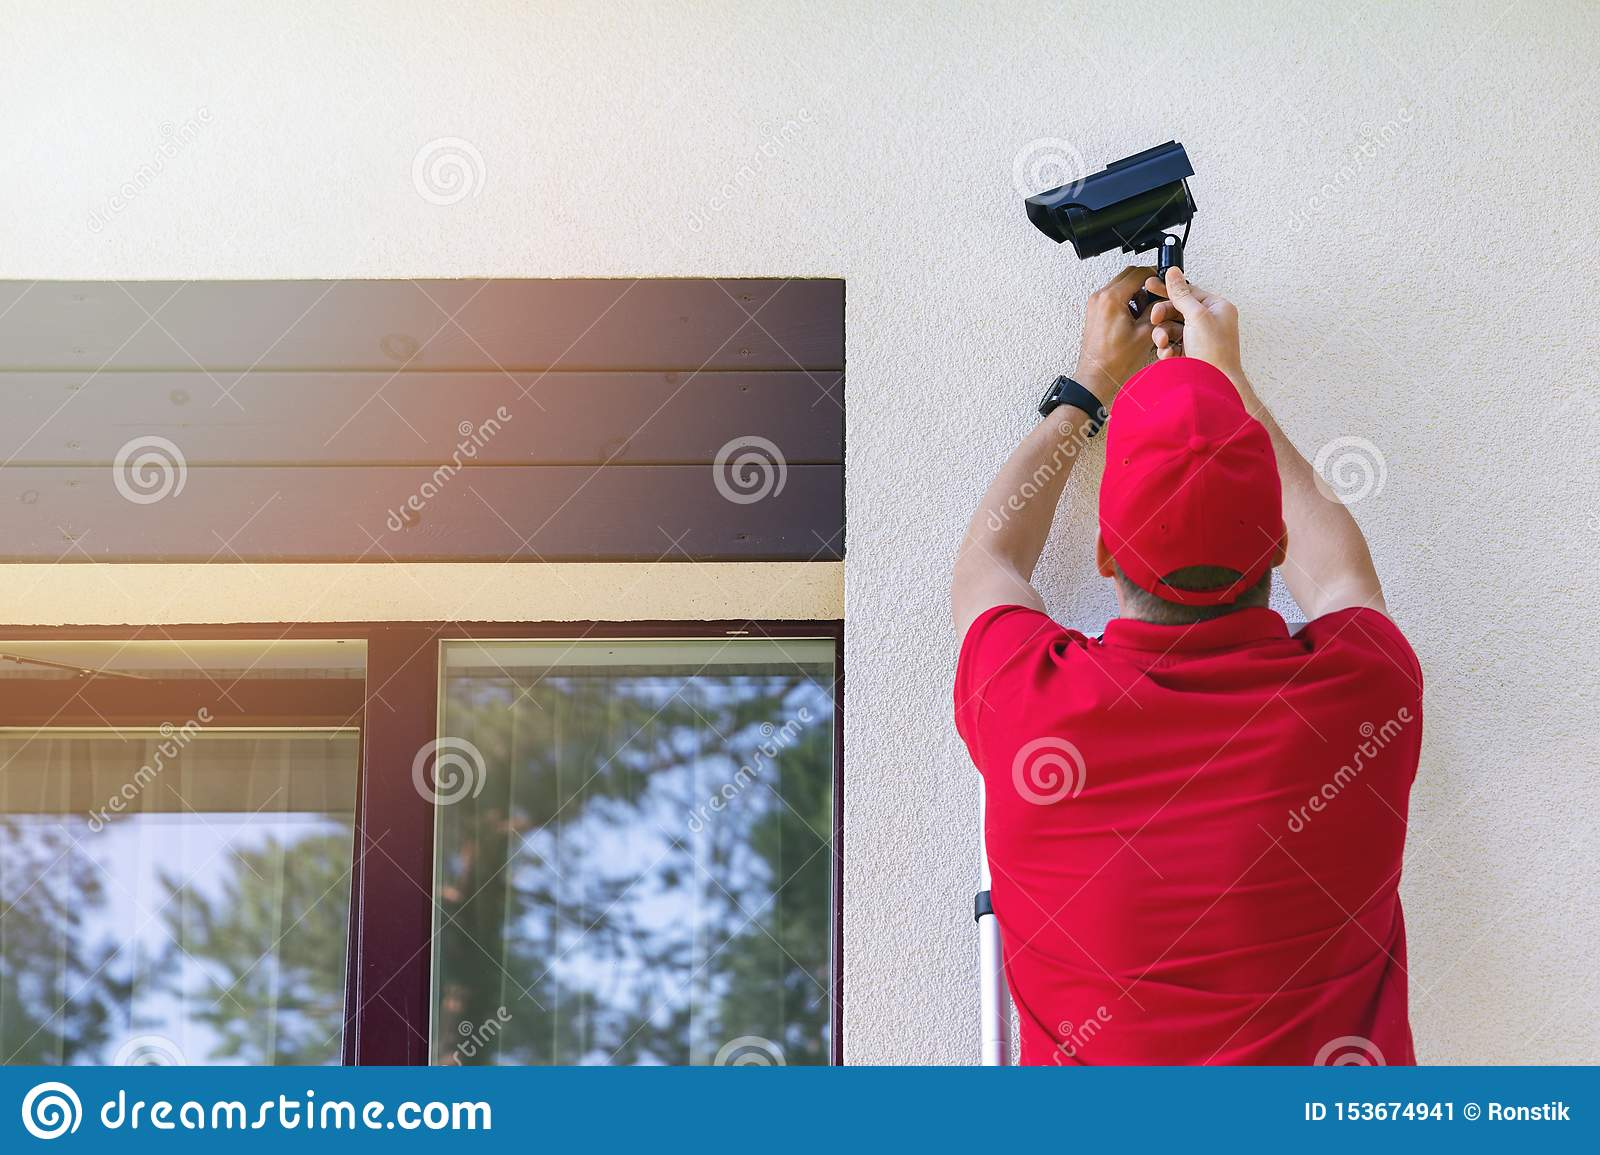 Technician installing outdoor security surveillance camera on house exterior wall